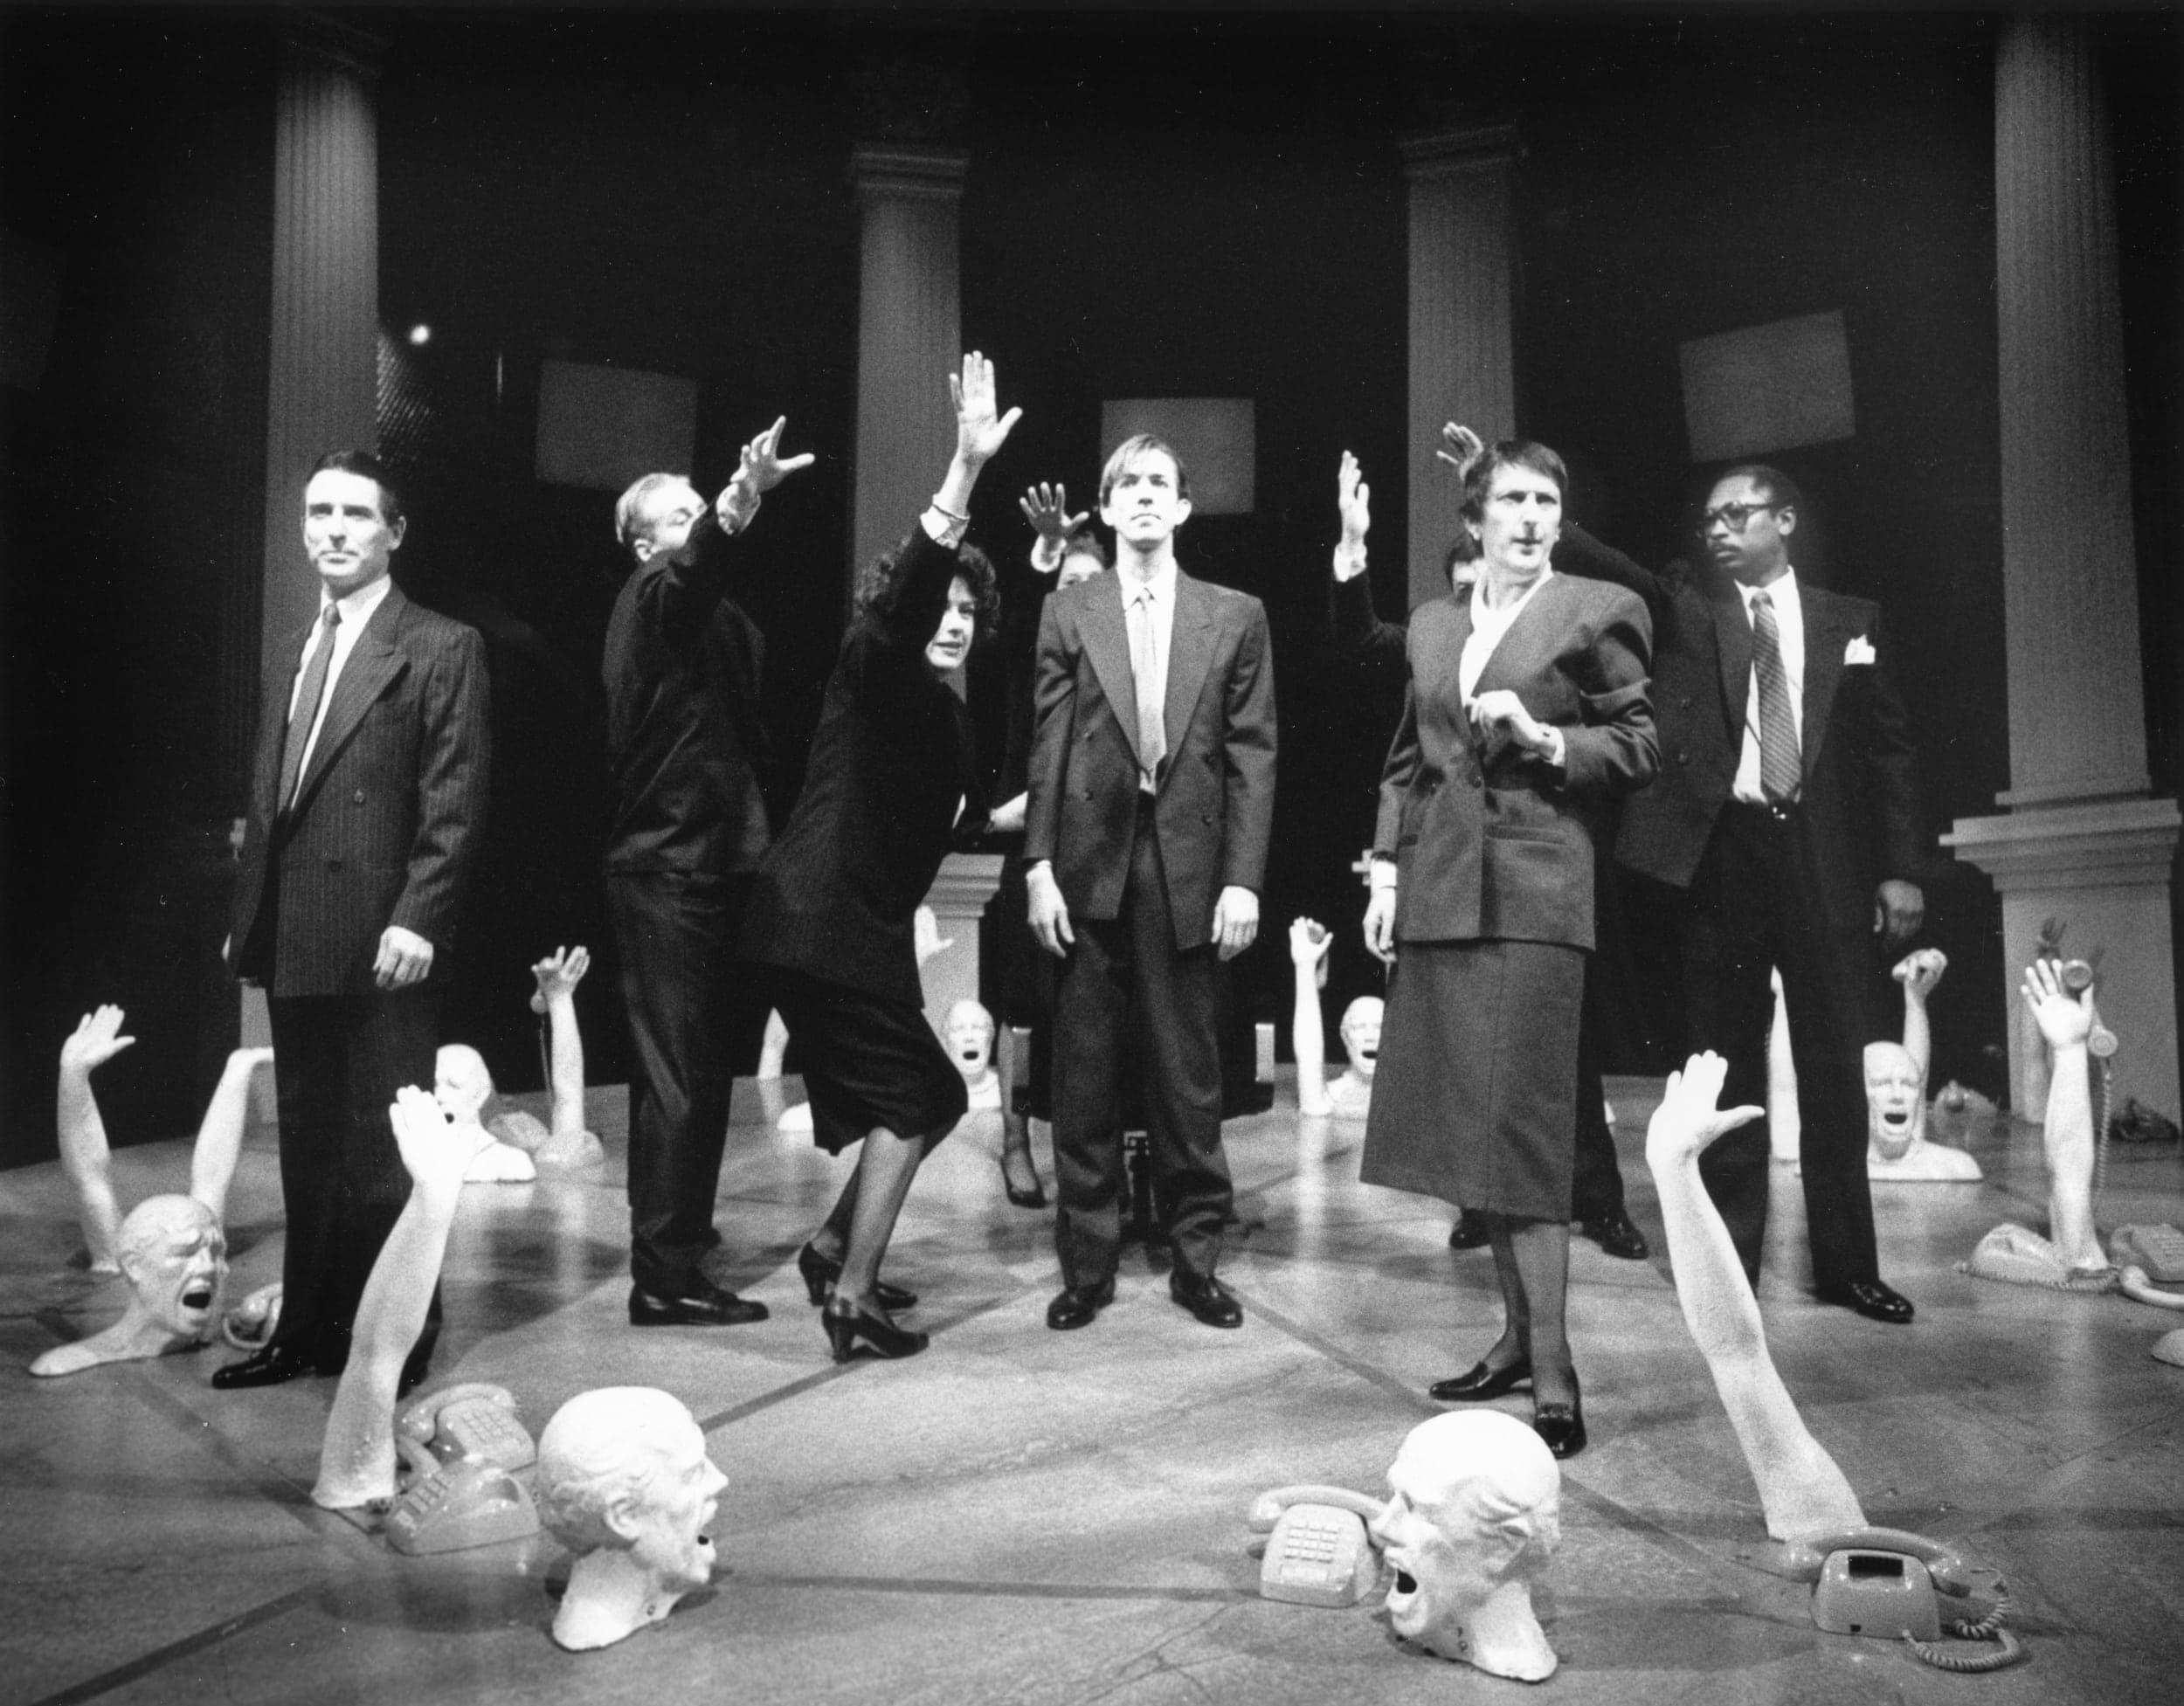 B_W_Serious_Money_-_John_McTernan_Richard_Roxb_Belinda_Davey_Robert_Mezies_Kerry_Walker_Ronald_Arthur_banks.jpg